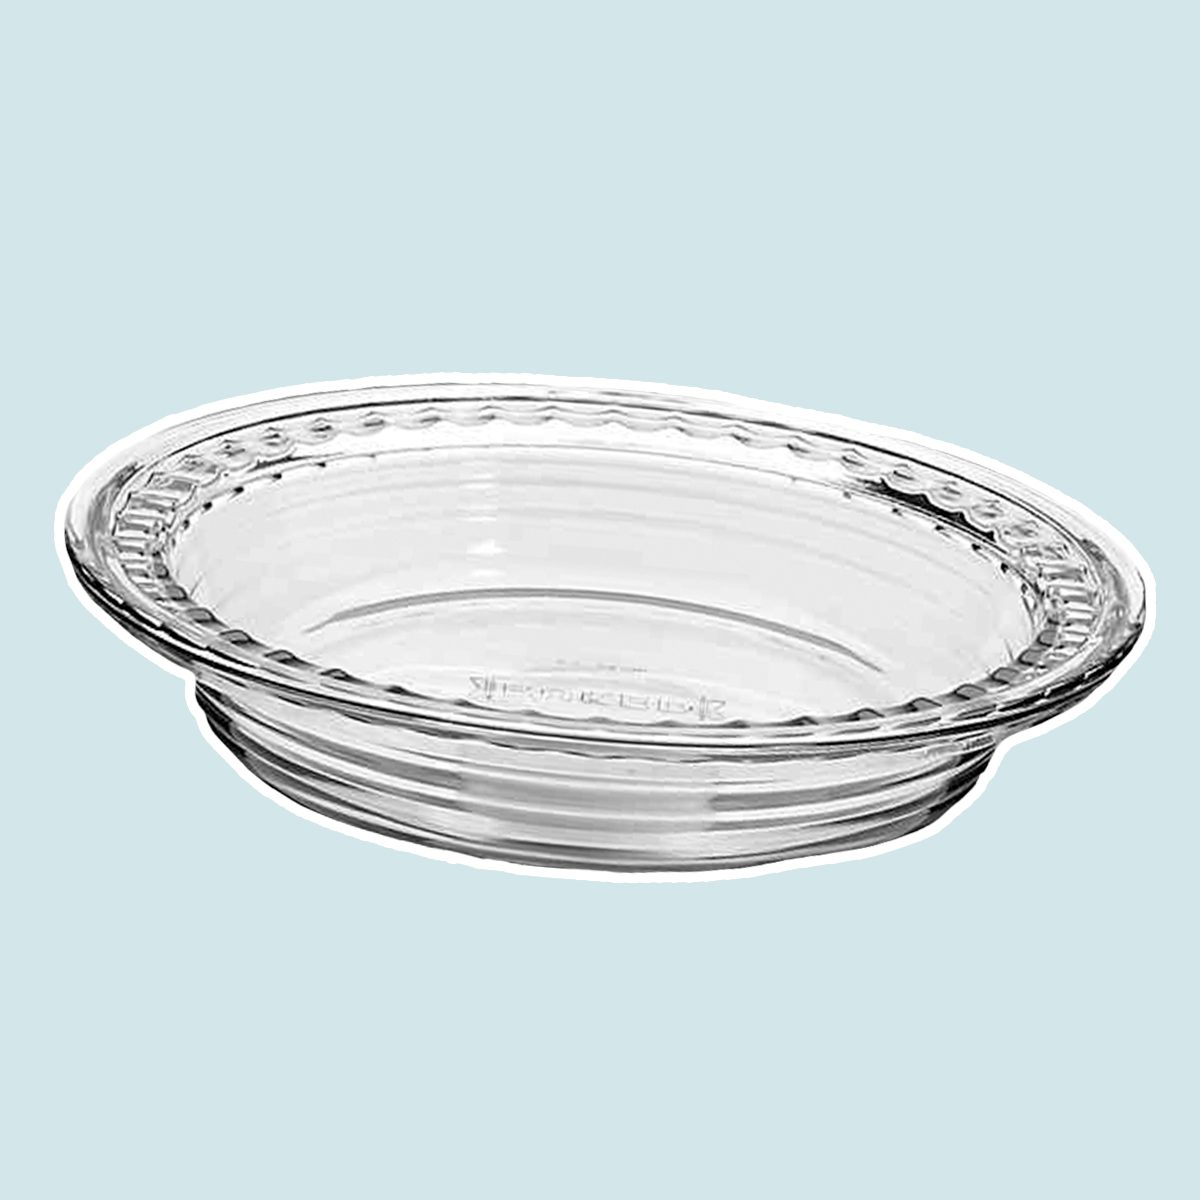 Anchor Hocking® Baked by Fire King Deep Pie Dish with Fluted Edge